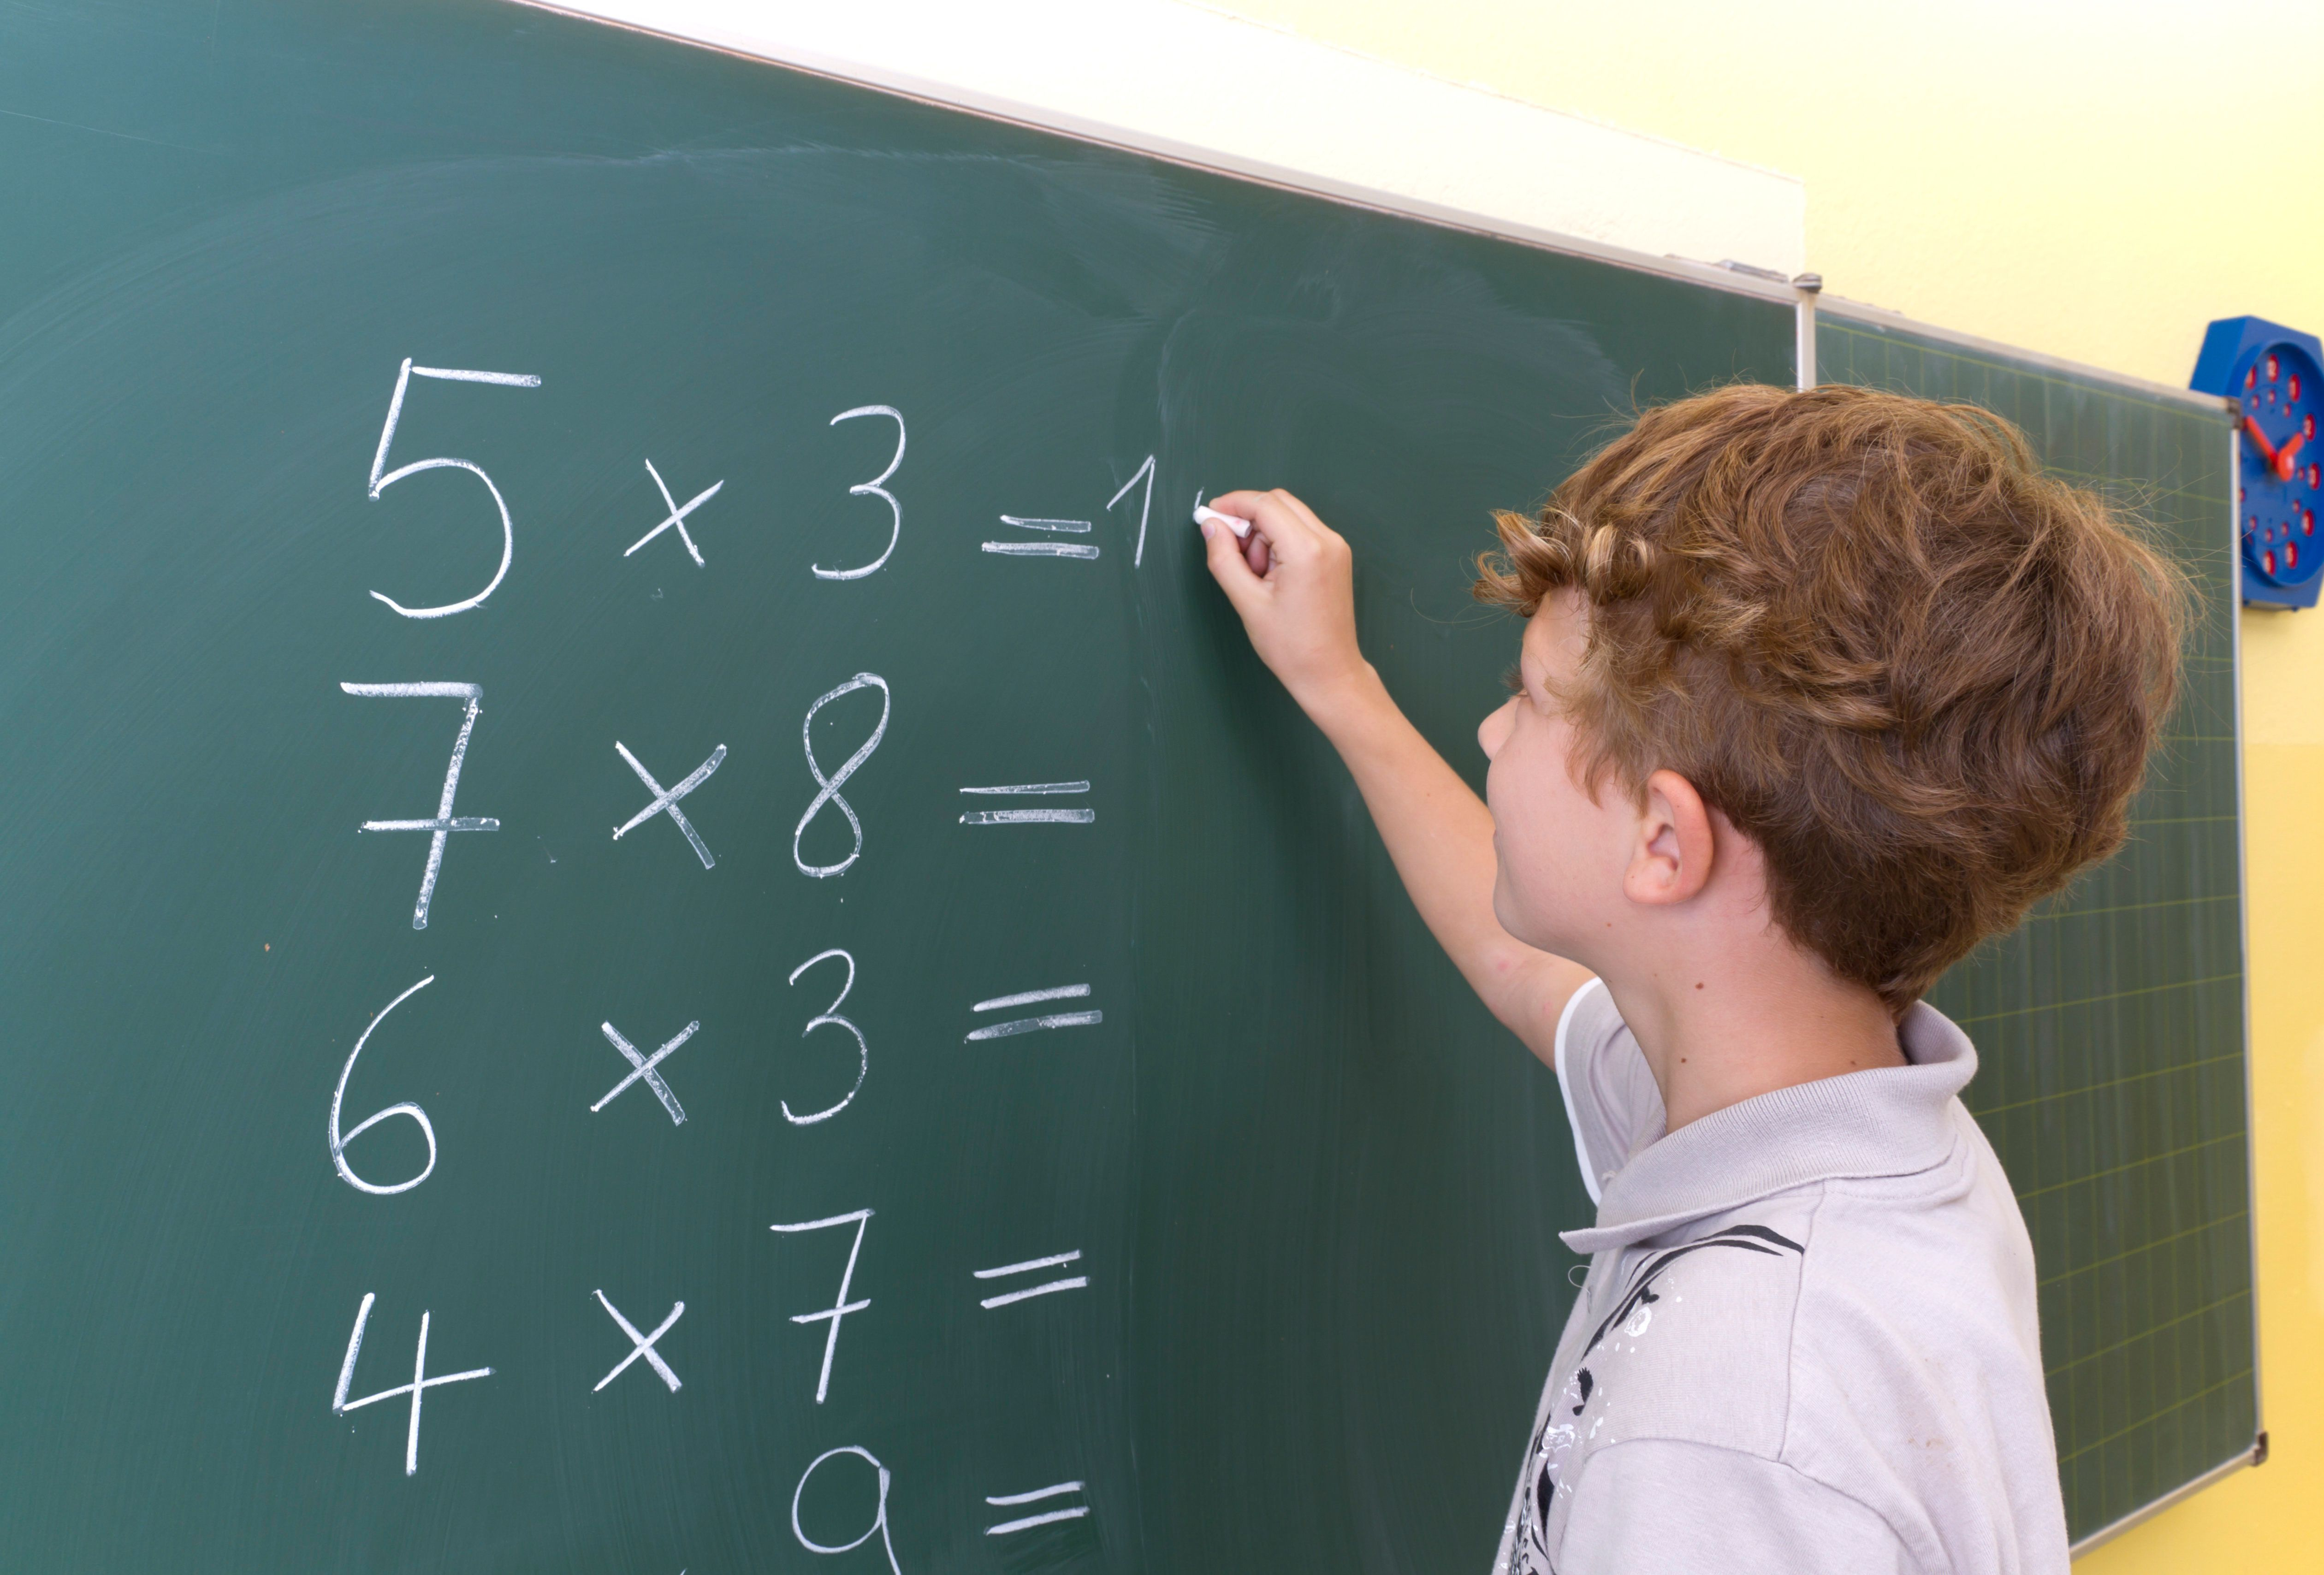 Teachers Oppose Times Tables Tests In Year 4: 'This Will Increase Stress For